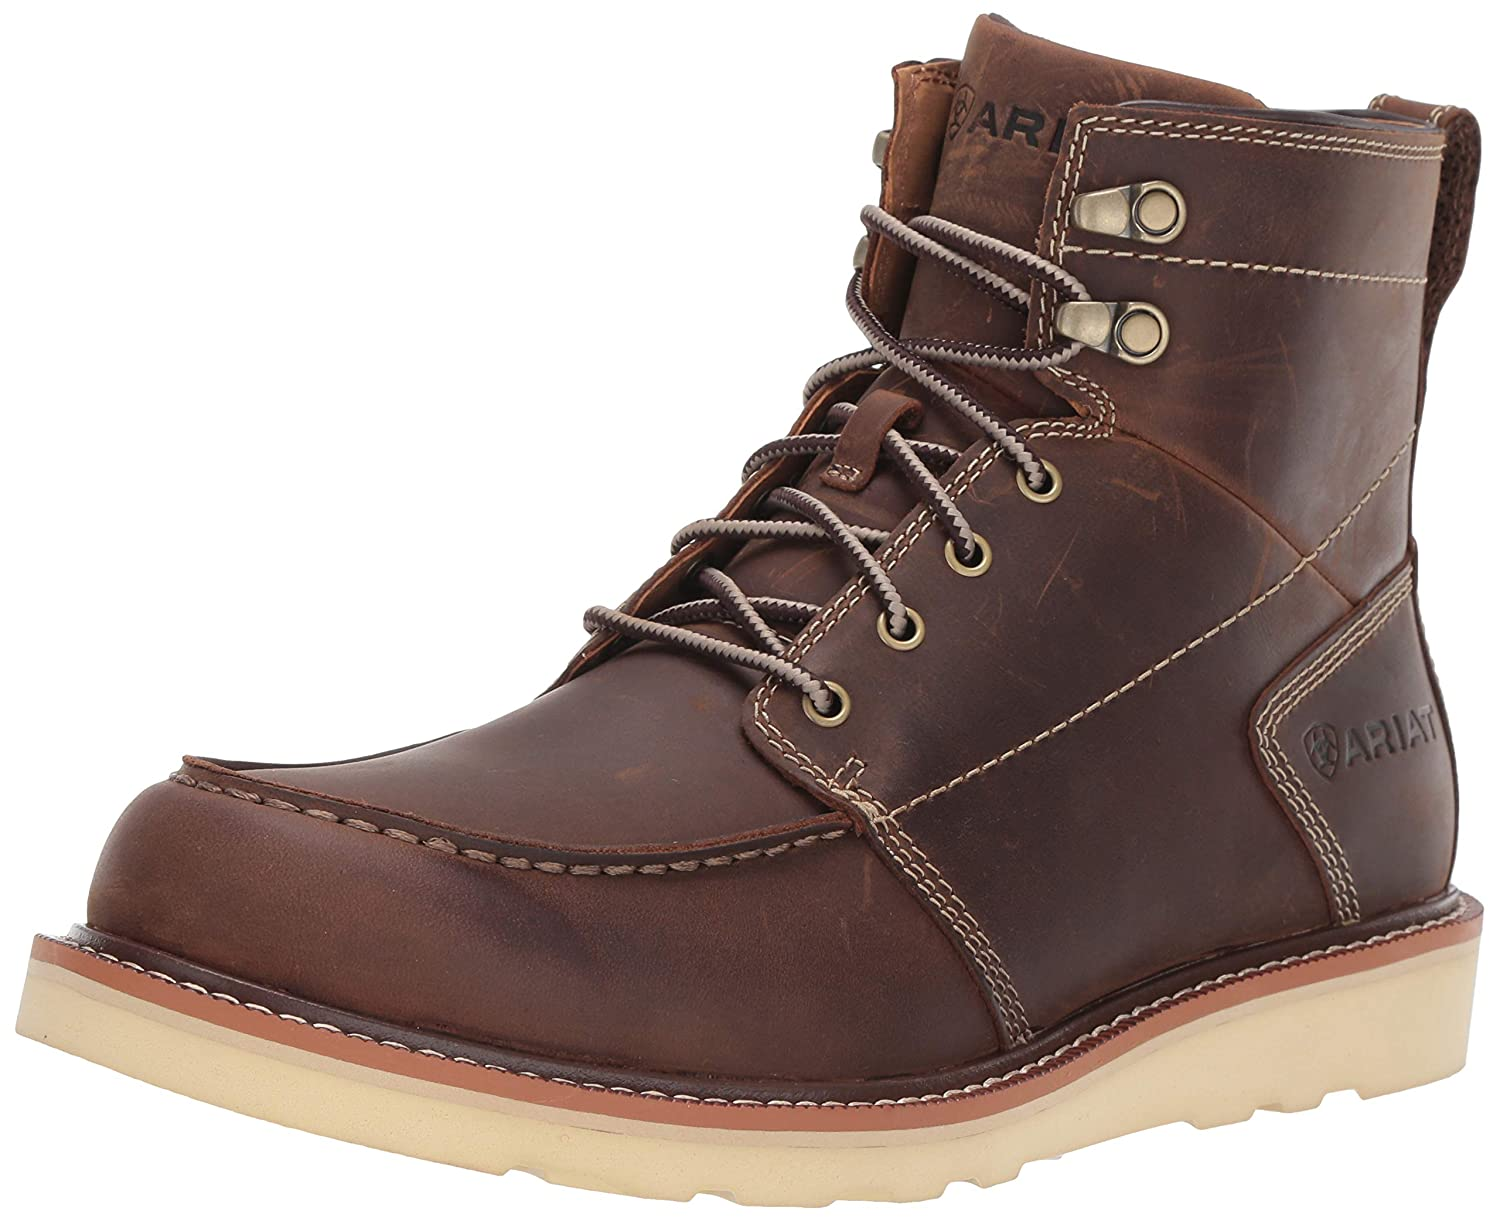 Distressed Brown Ariat Men's Casual shoes Western Boot